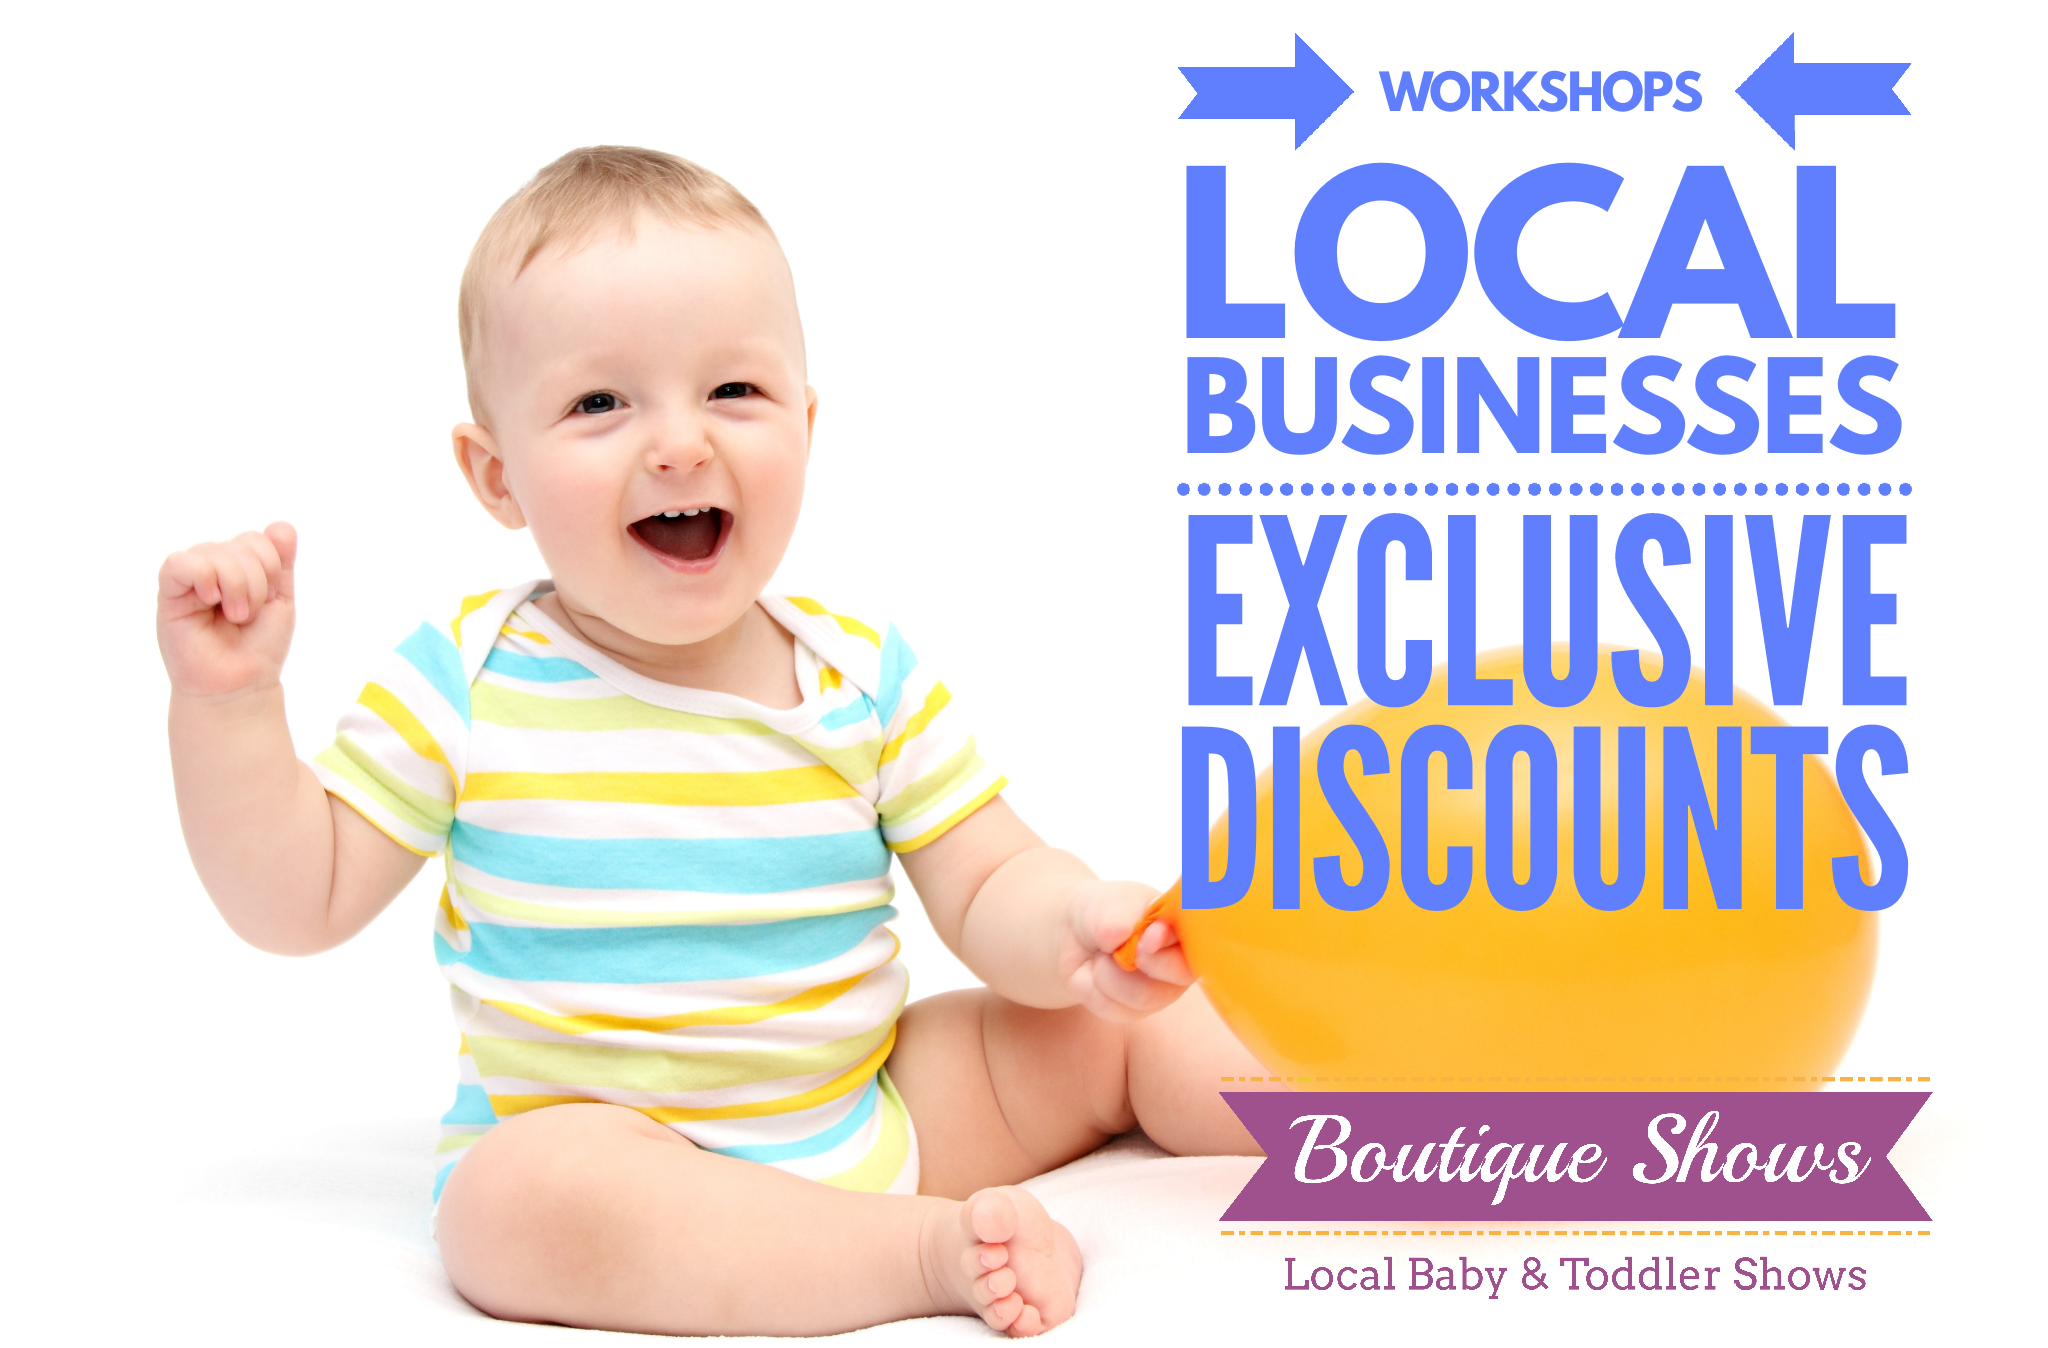 Liverpool Boutique Baby & Toddler Show